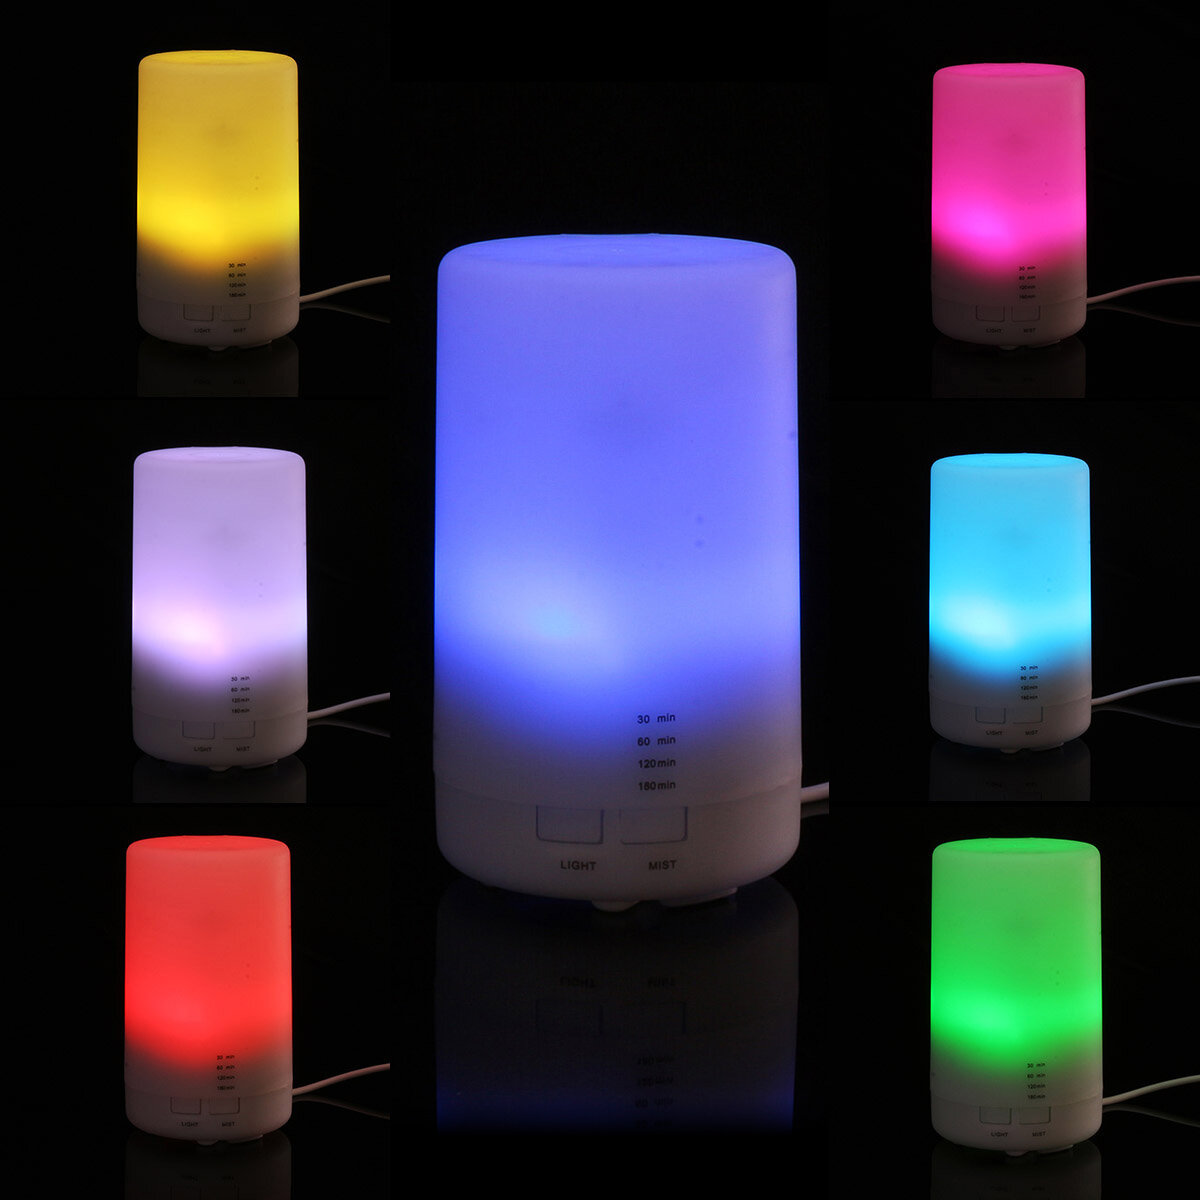 7 LED Ultrasonic Aroma Essential Diffuser Air Humidifier Purifier Aromatherapy Timing Function - 10